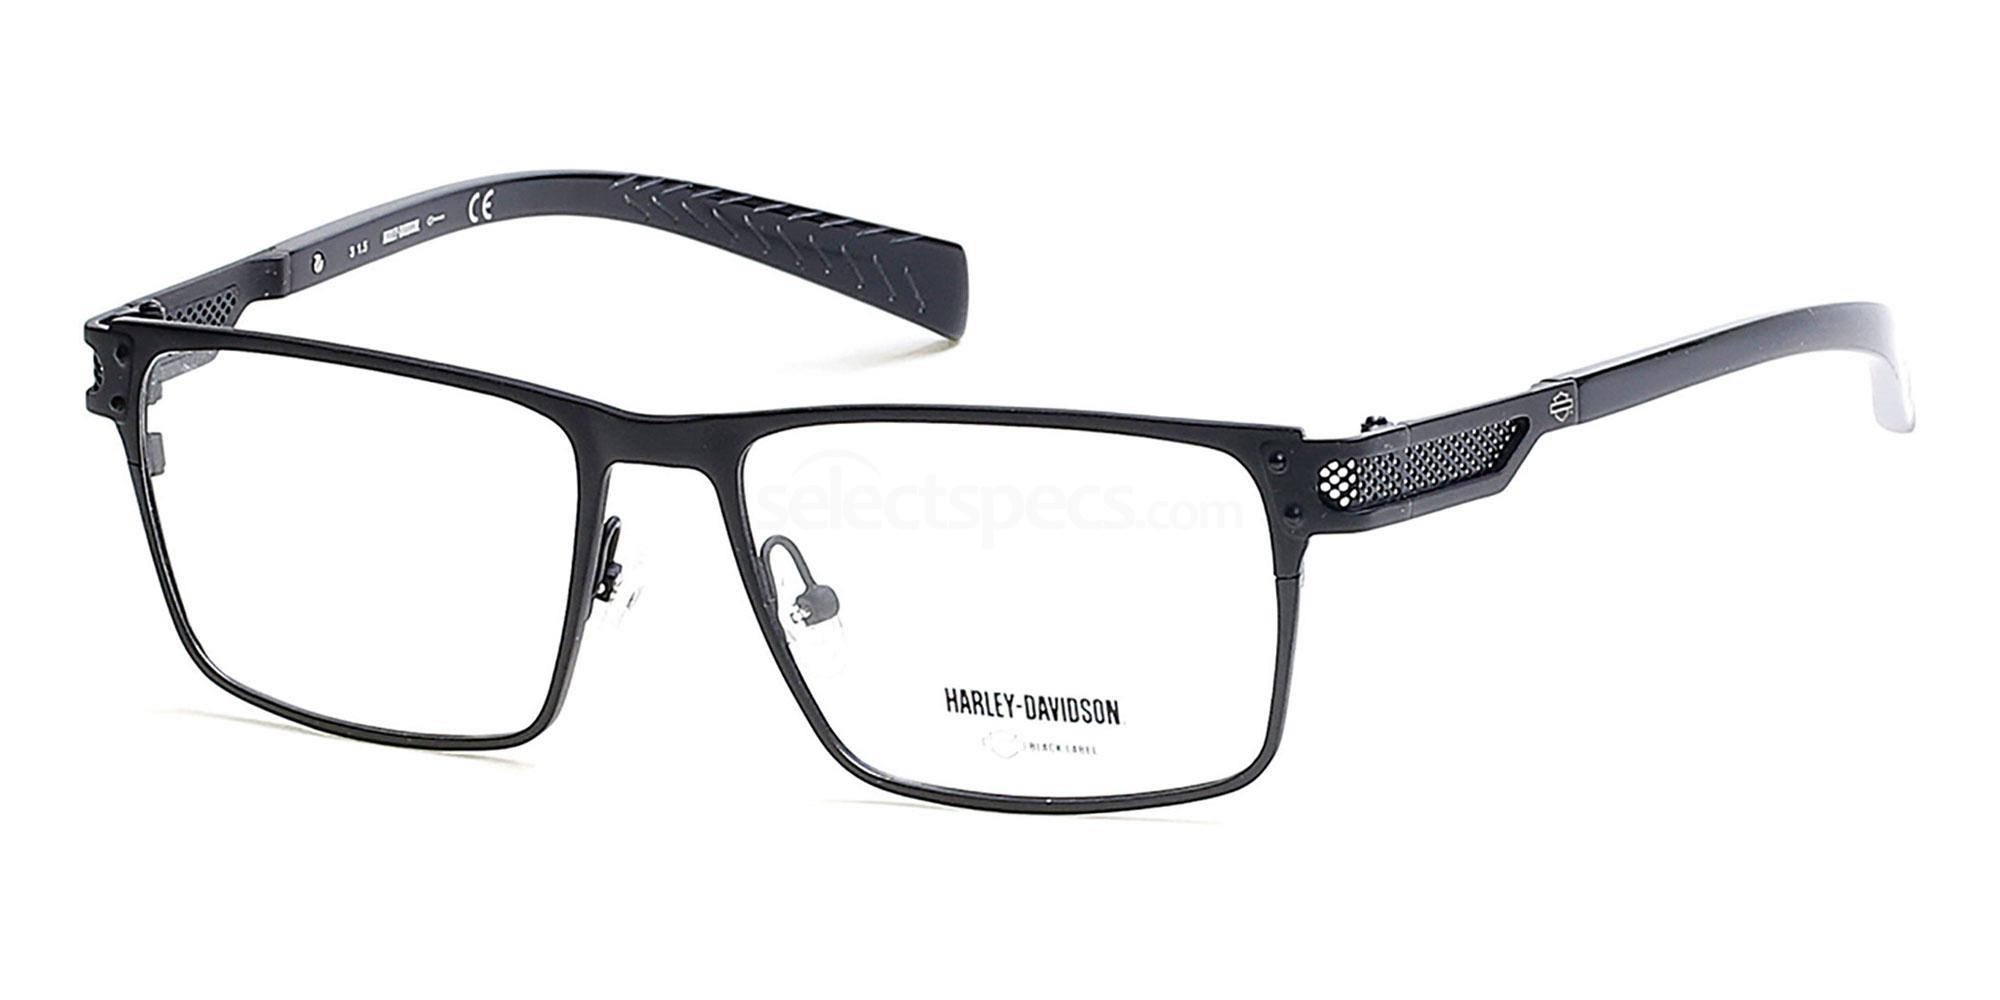 001 HD 1032 Glasses, Harley Davidson